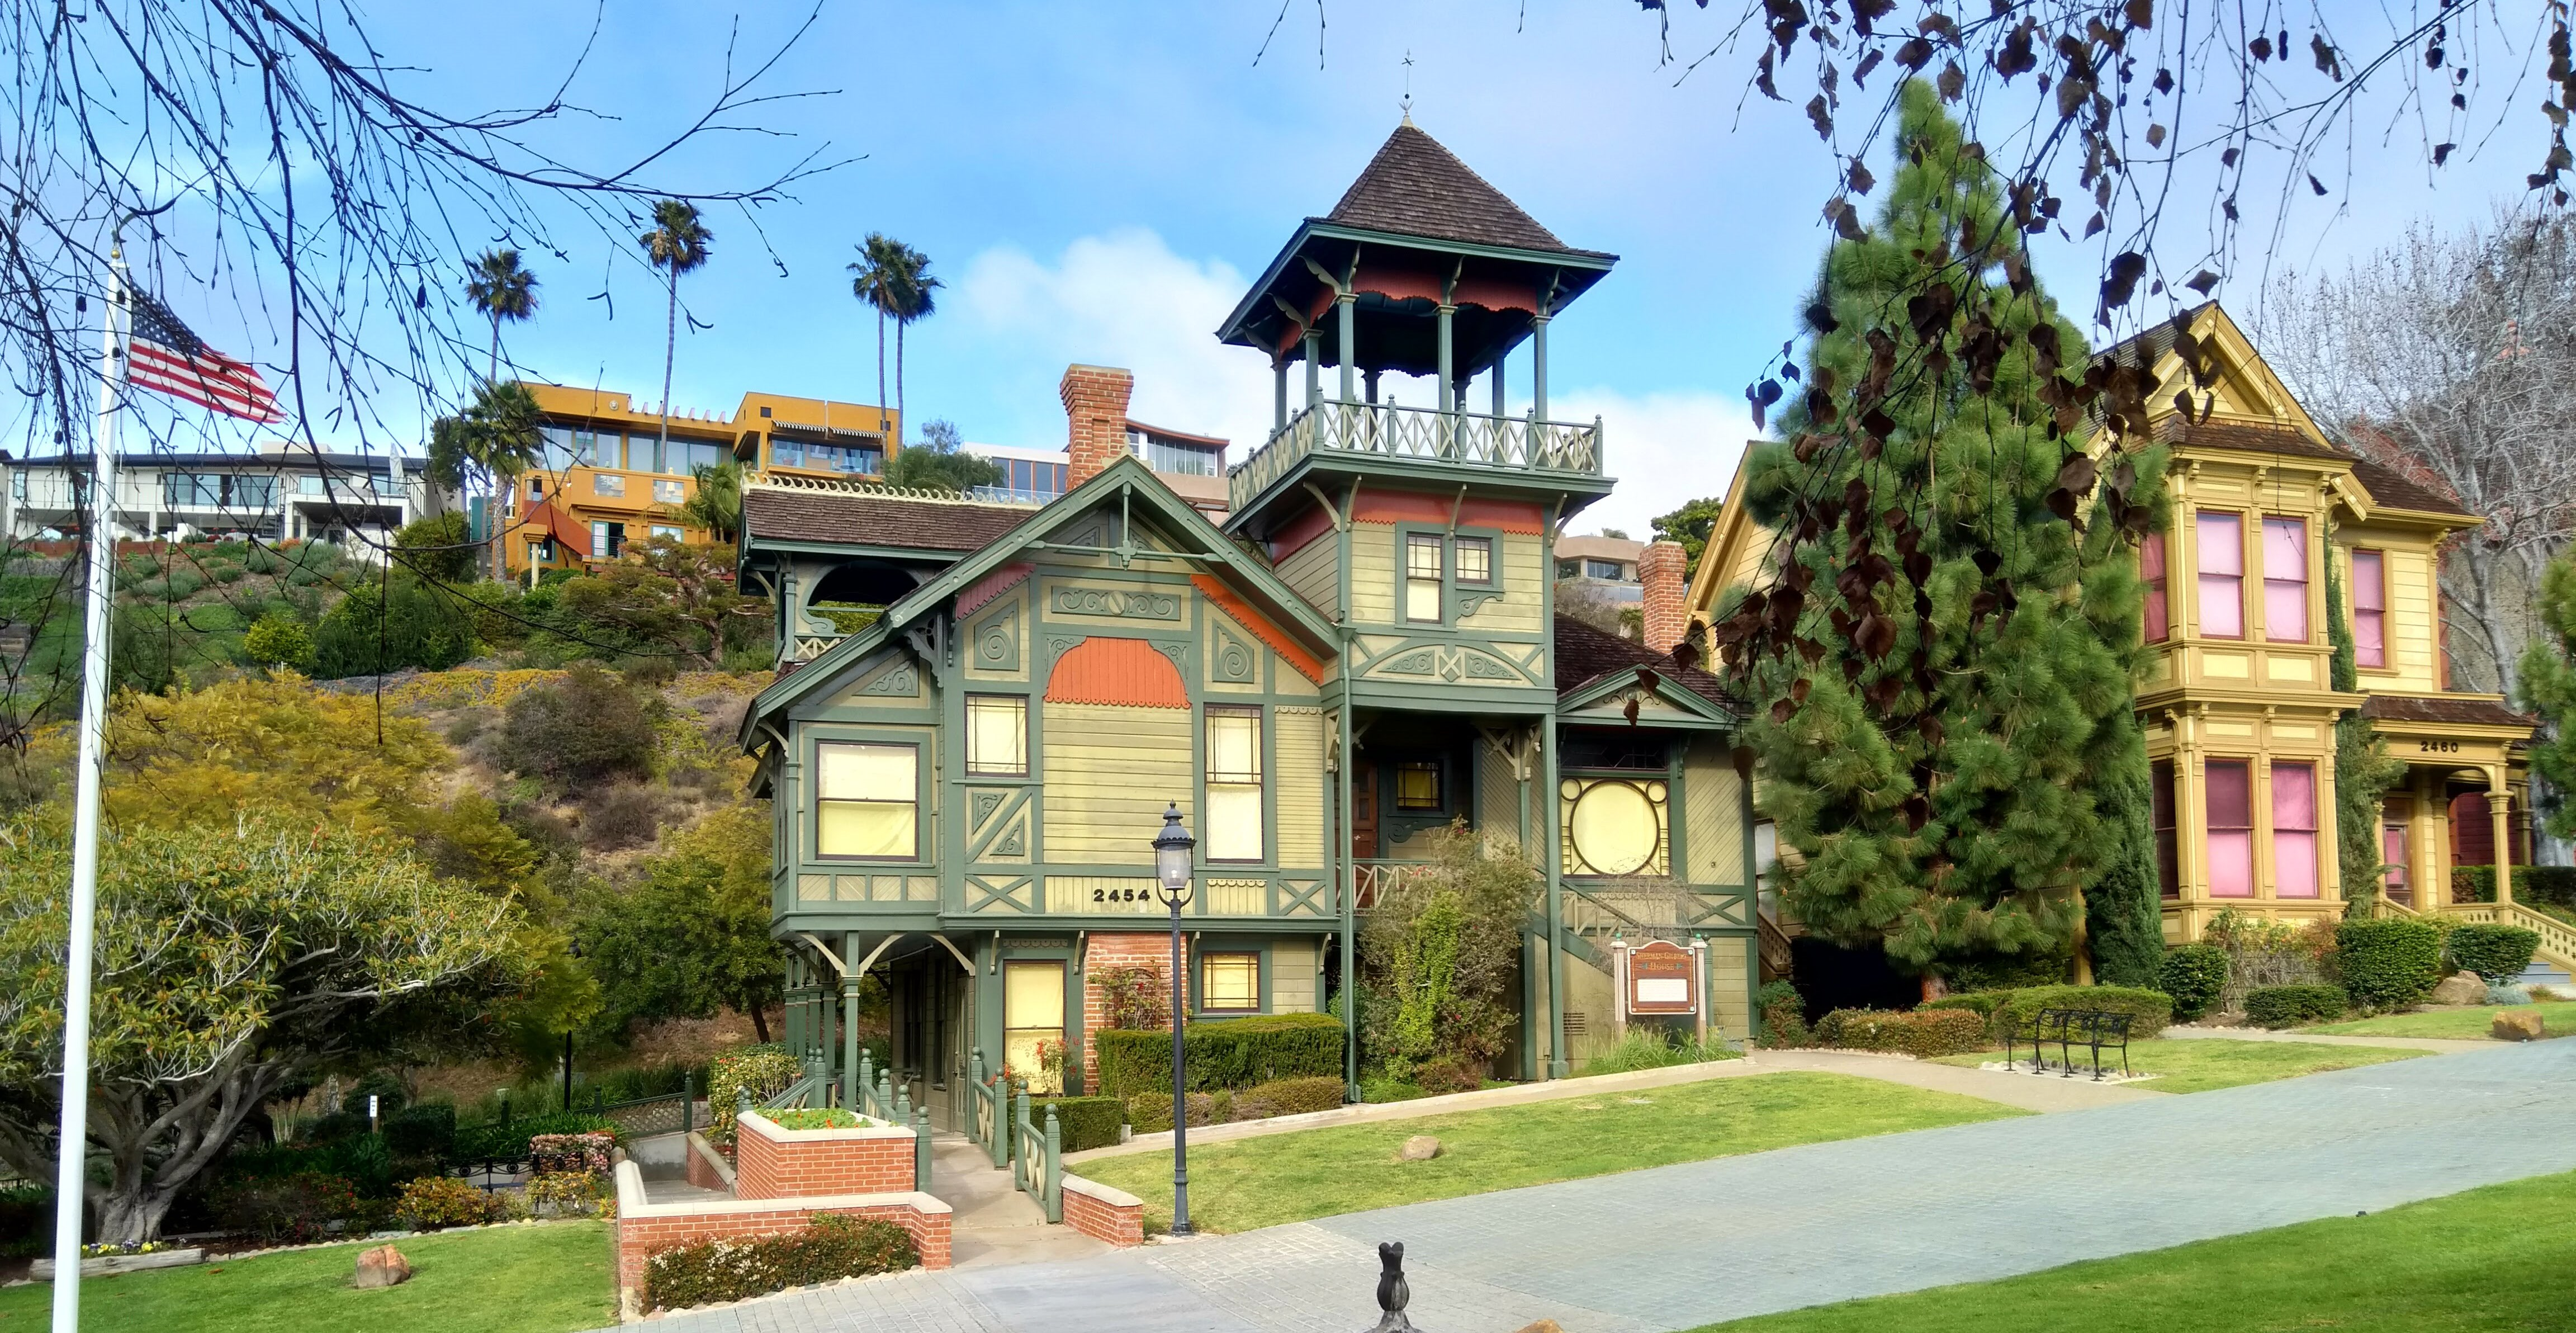 Wooden homes in San Diego Heritage Park, USA | AGACAD